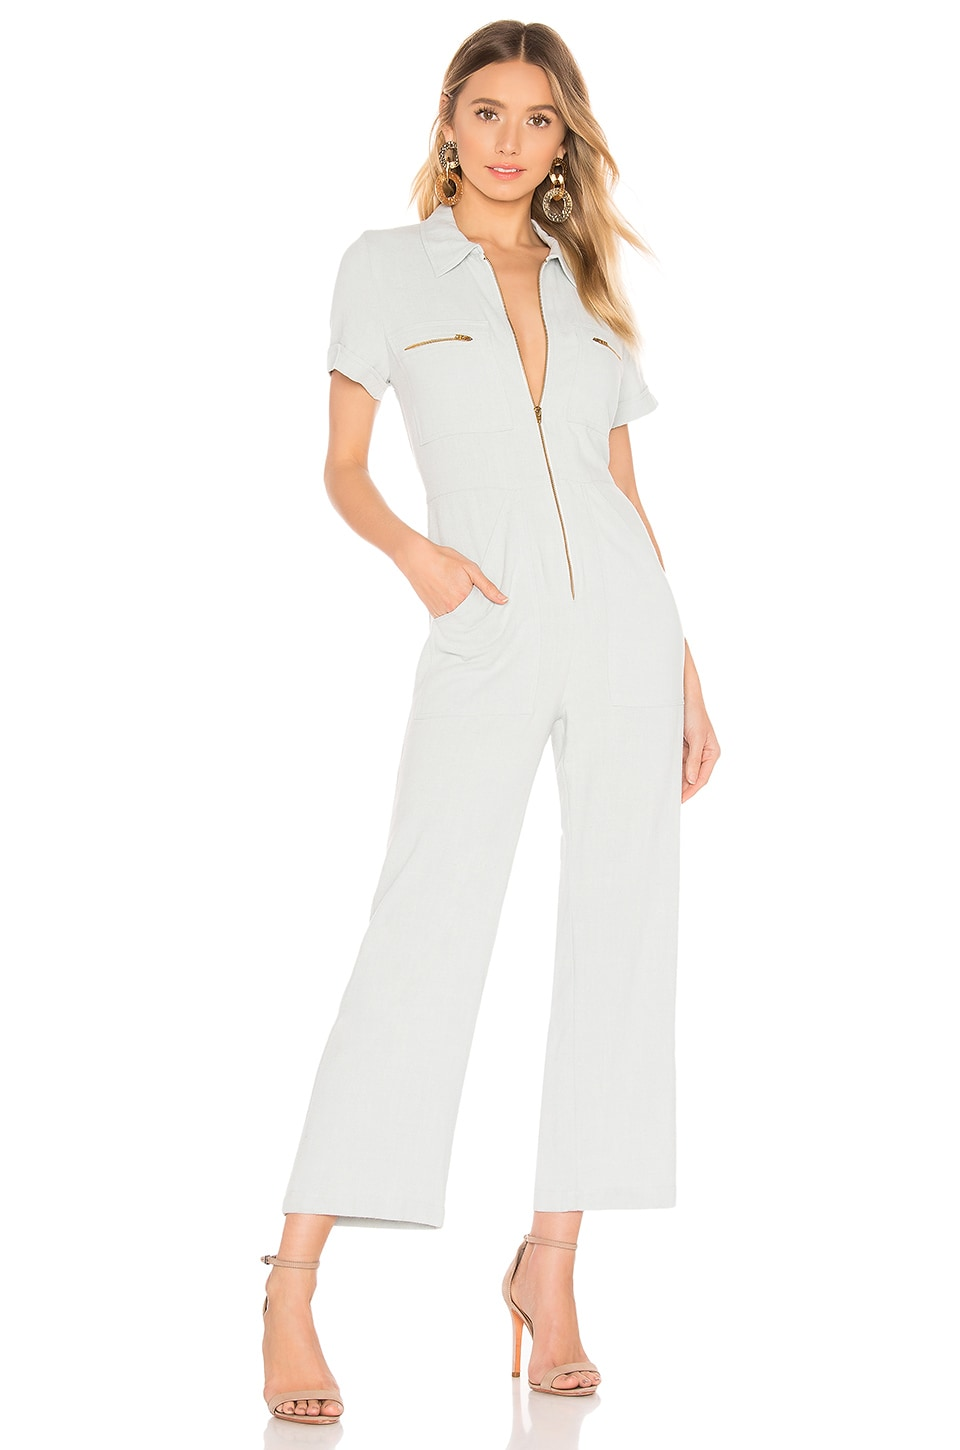 Rachel Pally Rocco Jumpsuit in Bluebell